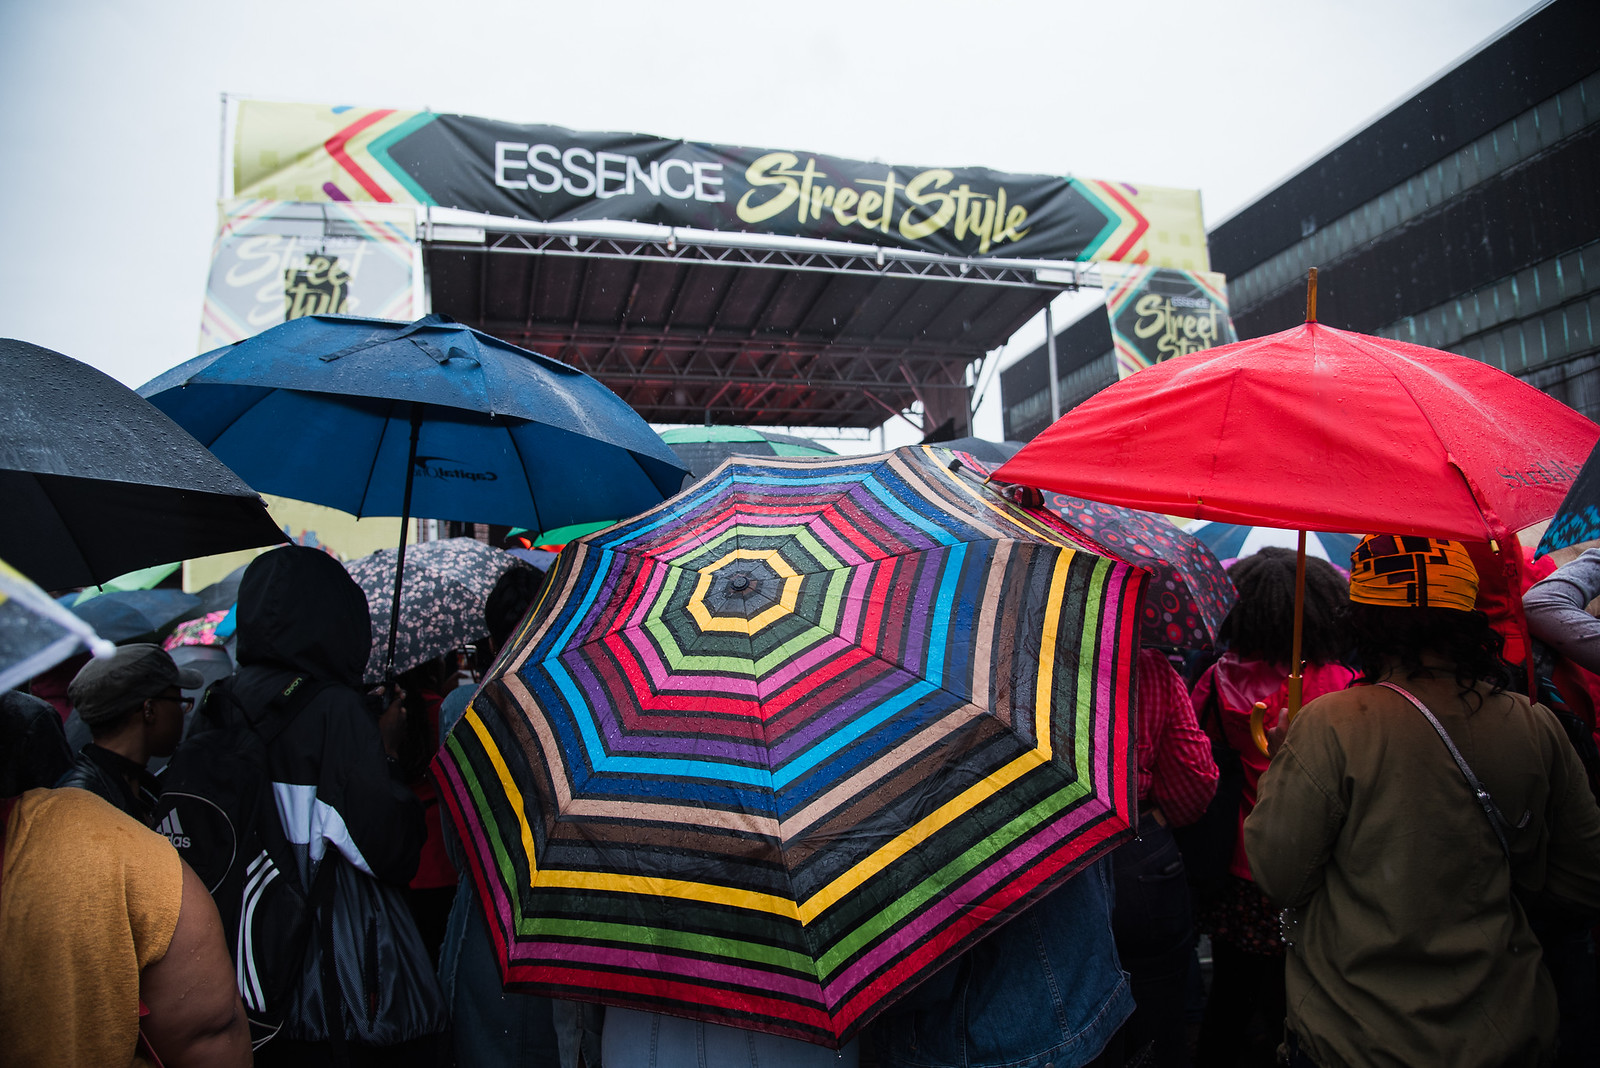 Essence Street Style 2018 at Navy Yards